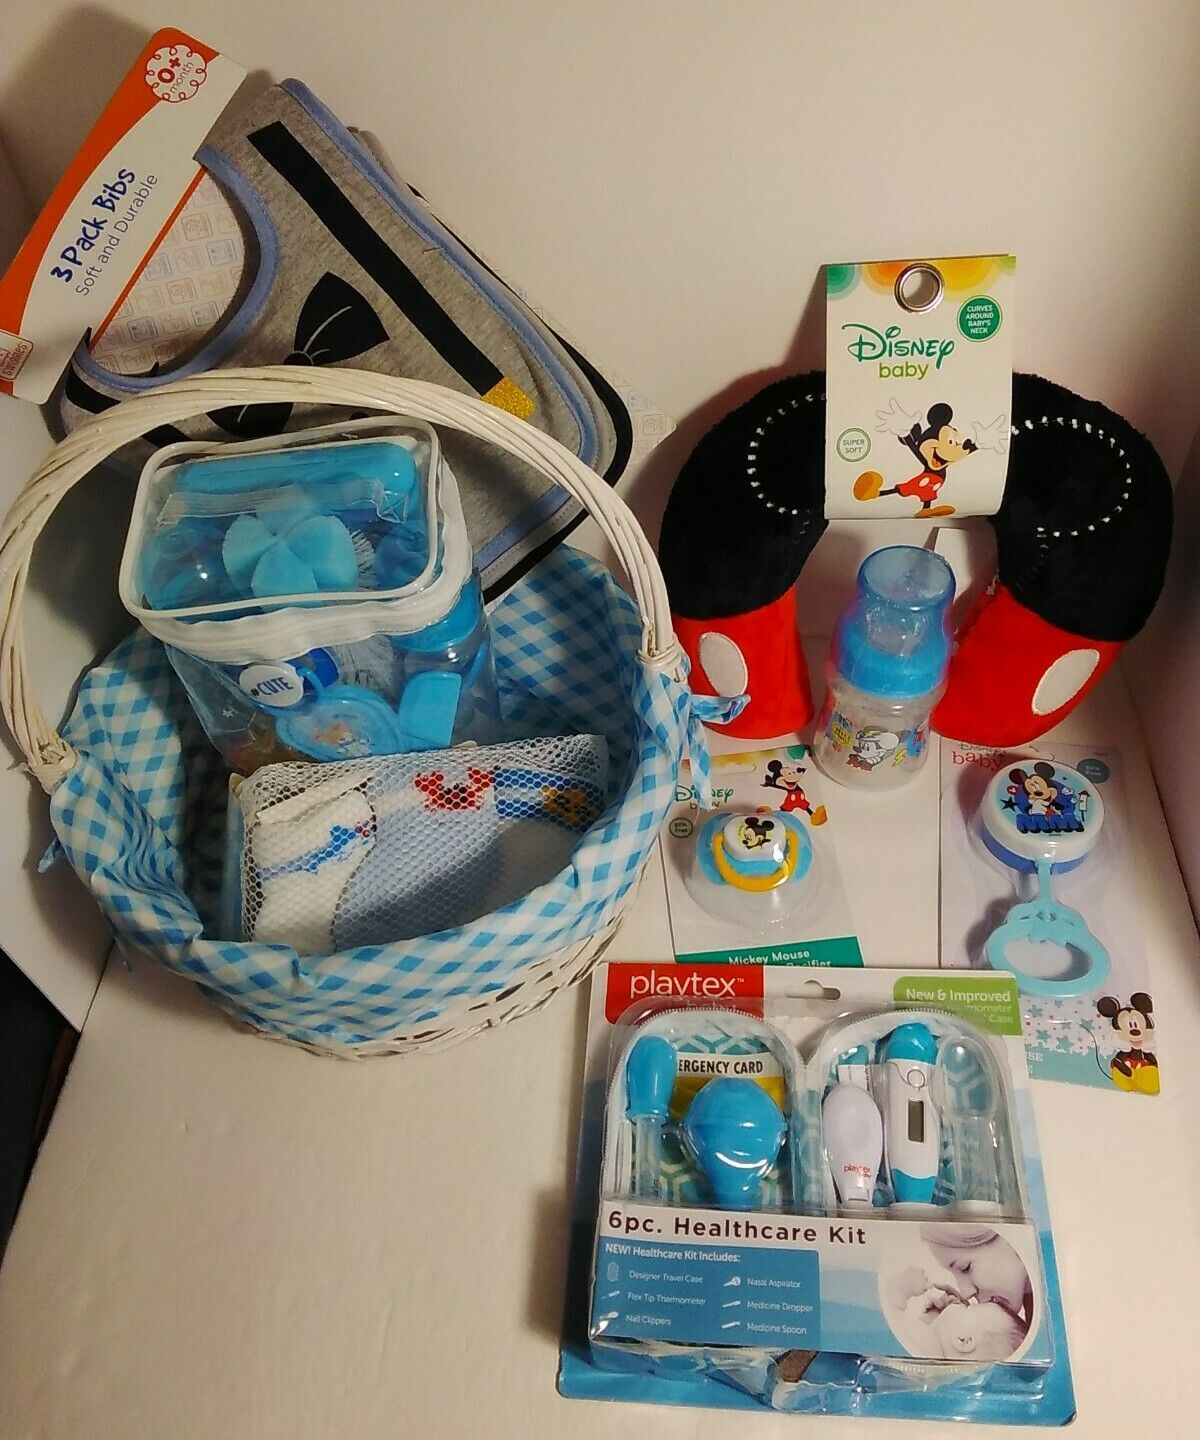 Disney Child Mickey Mouse Playtex Healthcare New child Equipment Lot of 9 Reward 👀PICTURES